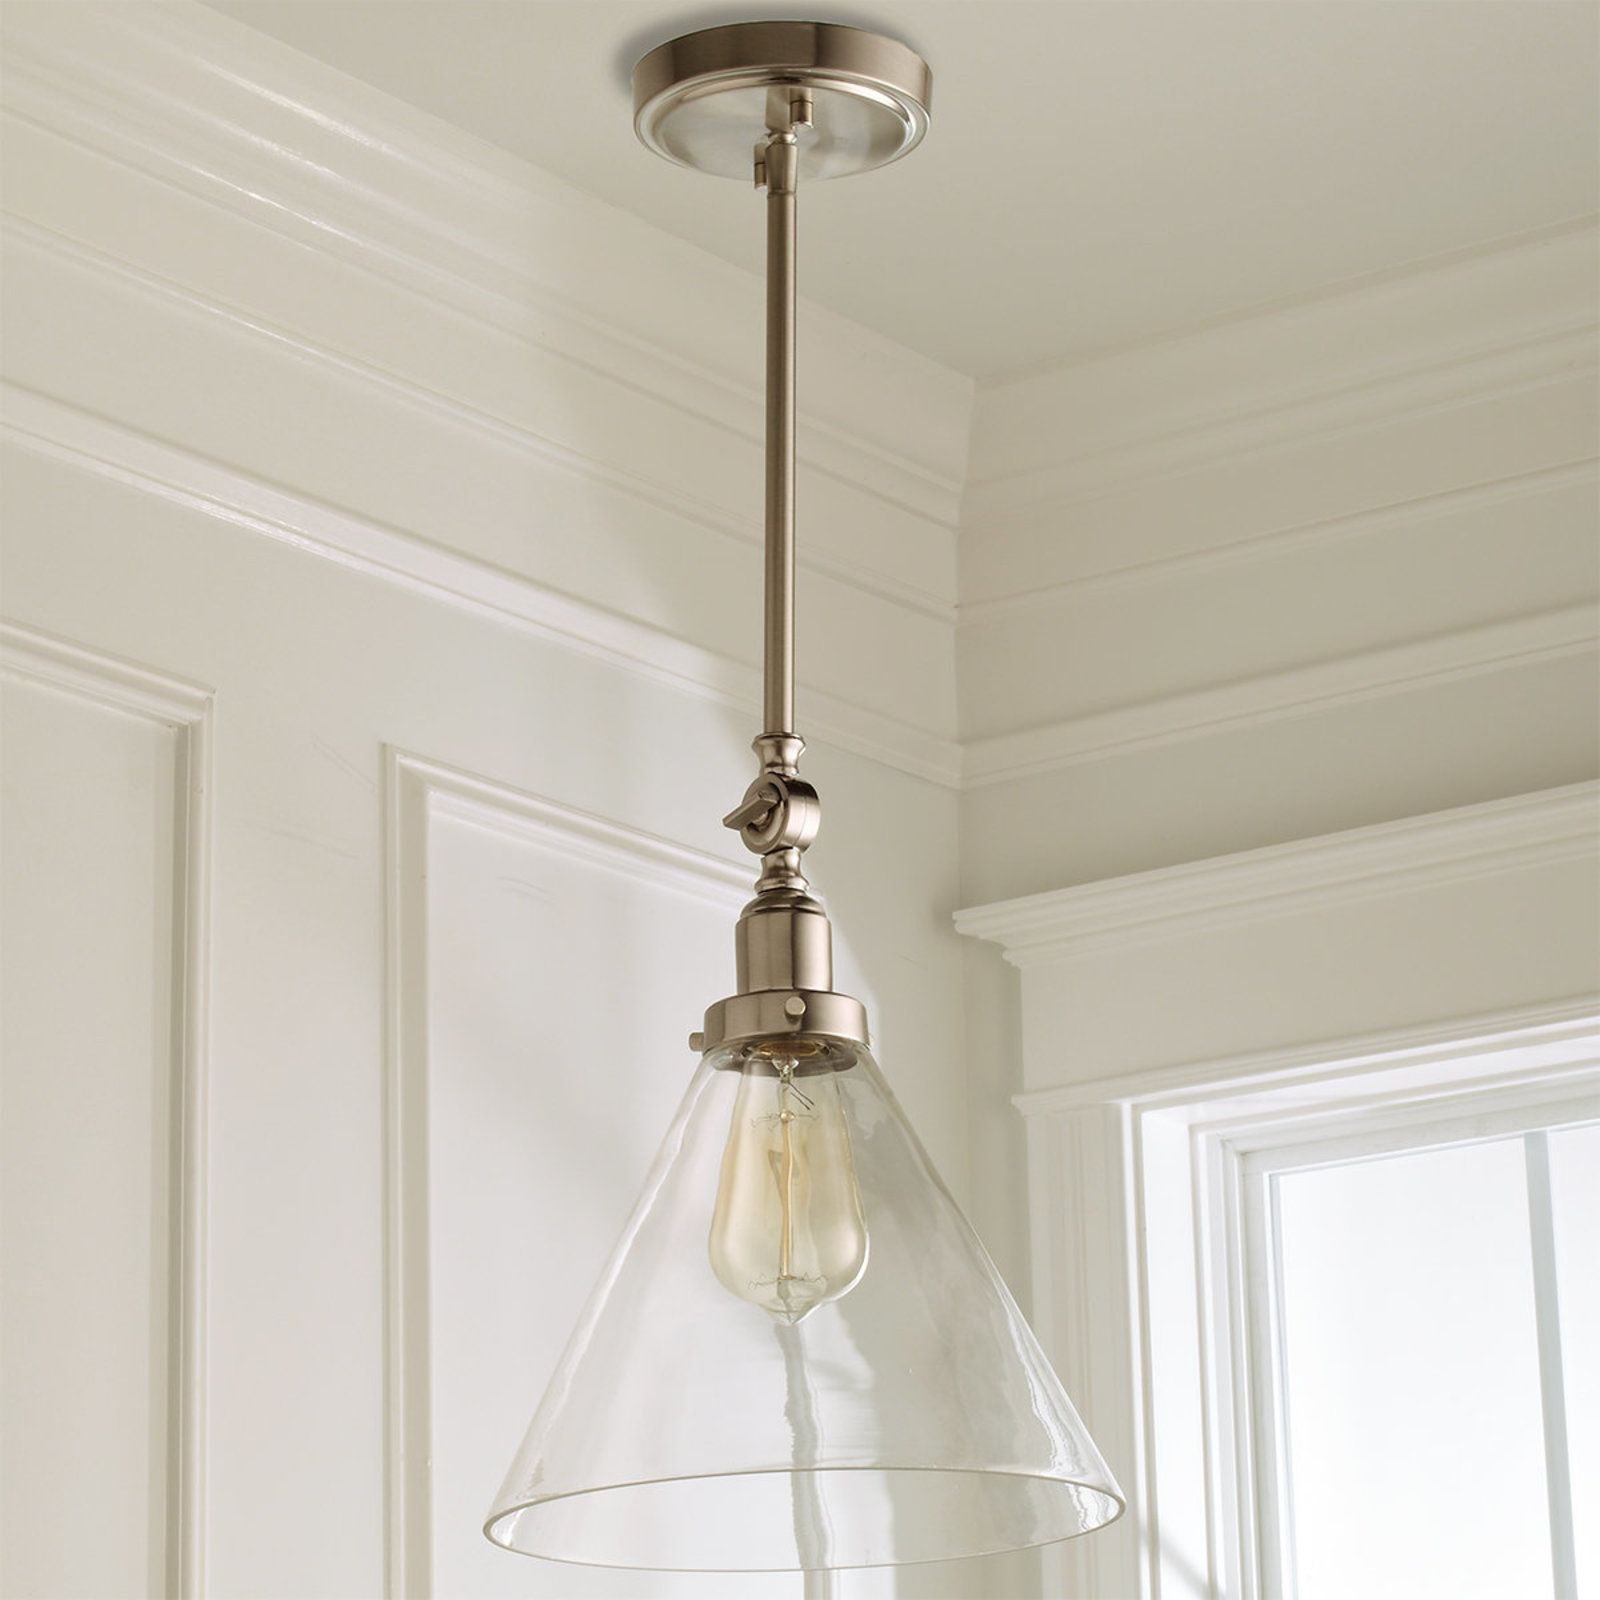 Industrial Triangle Shade Pendant Glass Shade Pendant Light Glass Pendant Shades Pendant Light Shades Glass shades for hanging lights